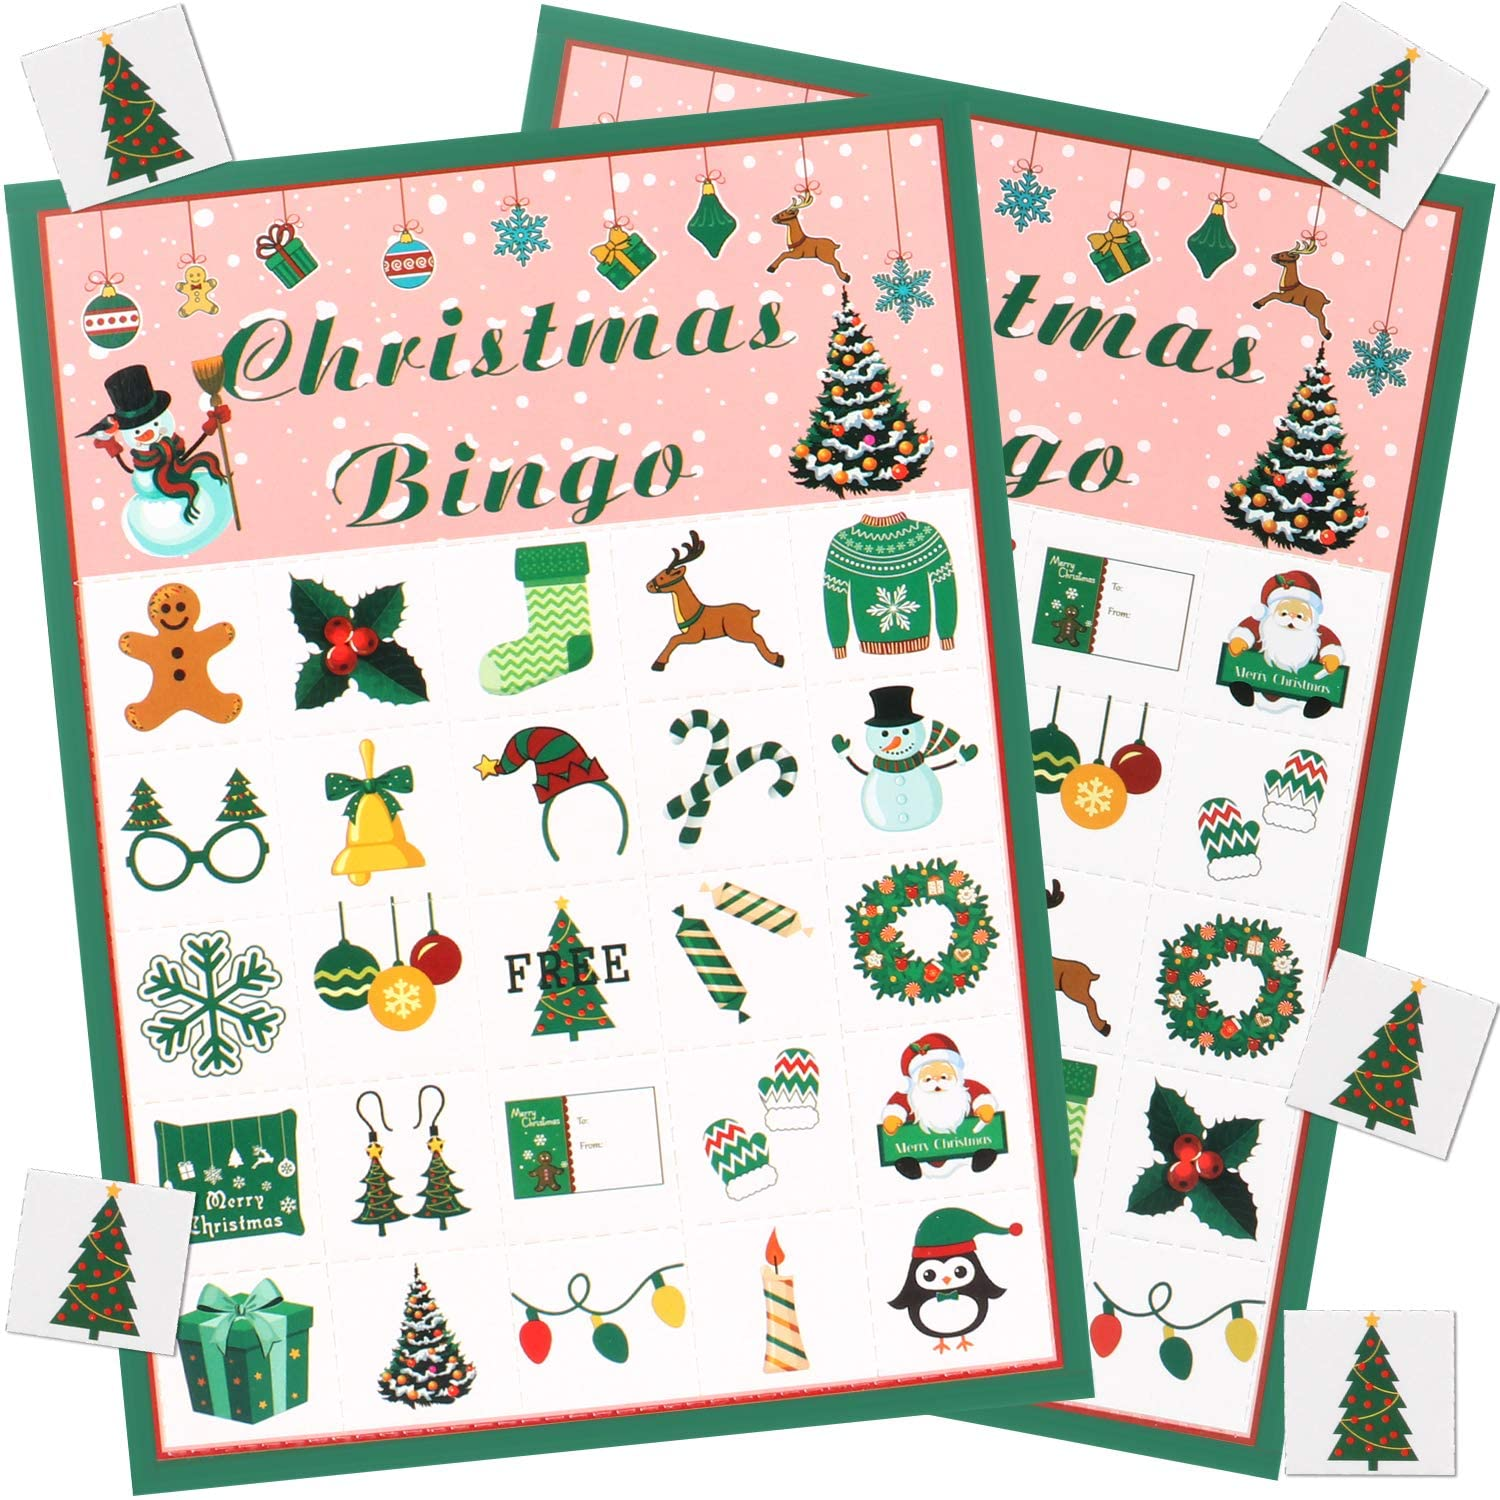 HOMENOTE Christmas Bingo Game for Large Group - Kids Xmas Activities Cards Adult Family Games Party Supplies for Holiday Thanksgiving Classroom Crafts by Gamenote (24 Players)